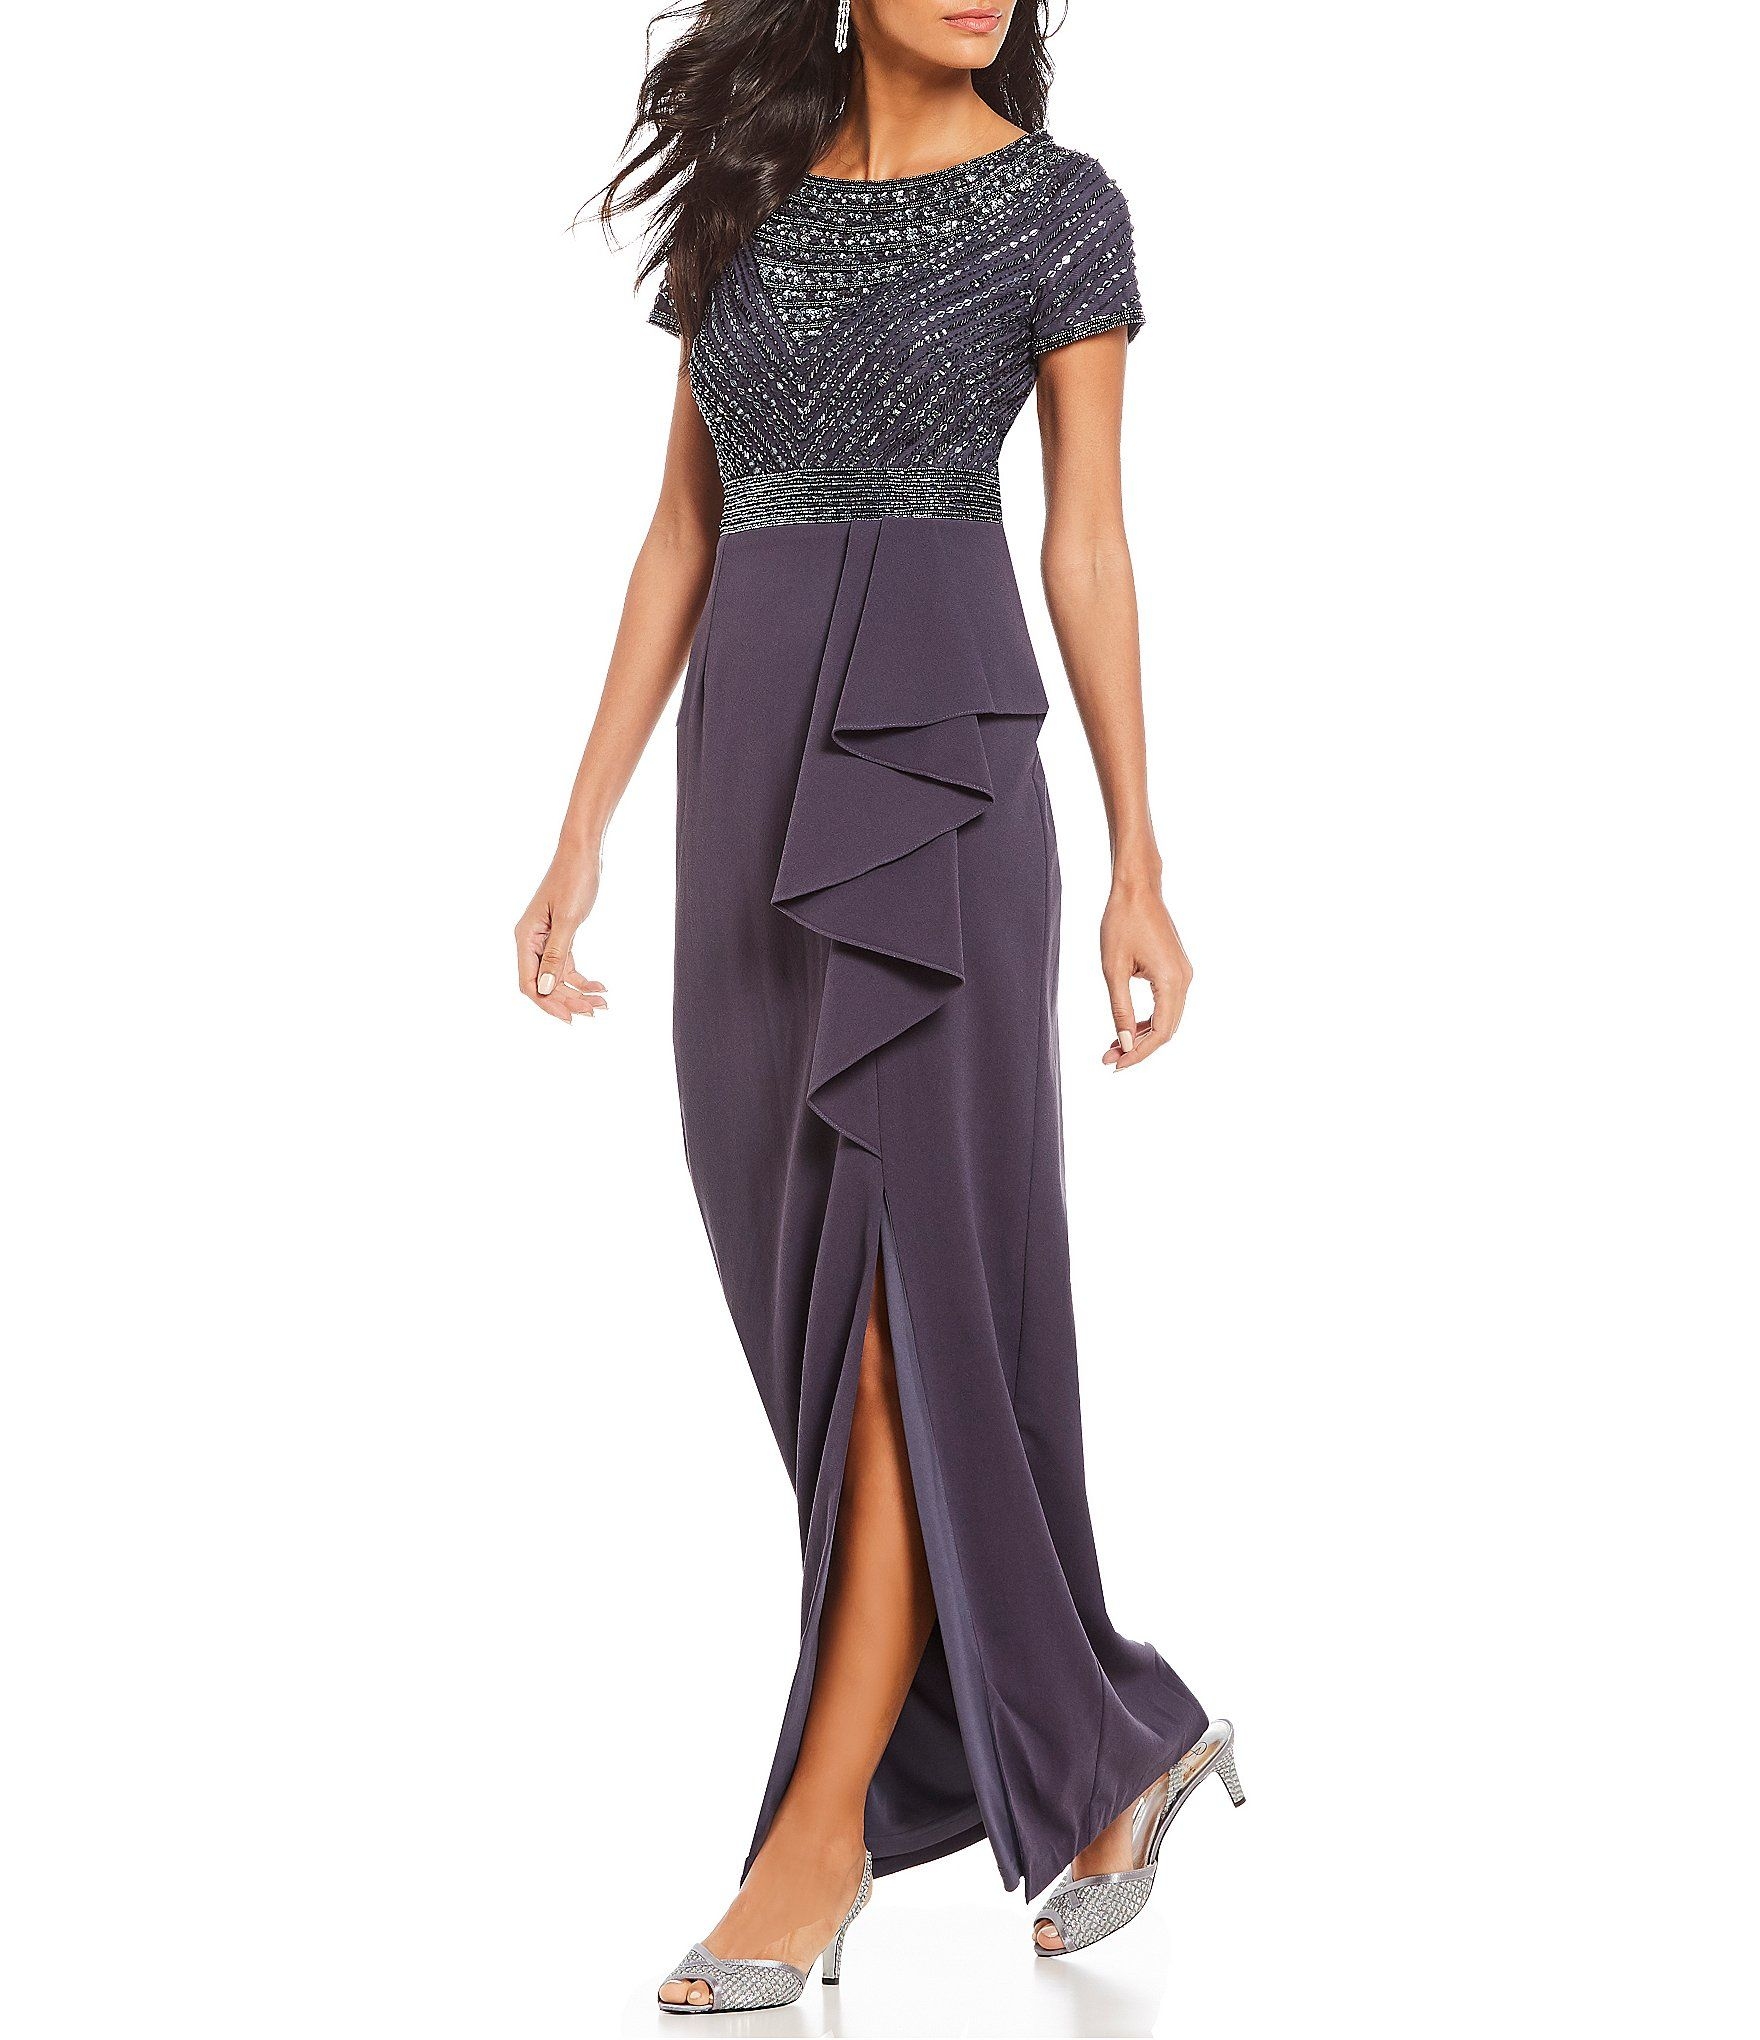 82fe4186476 Adrianna Papell Crepe Beaded Ruffle Front Slit Gown  Dillards ...